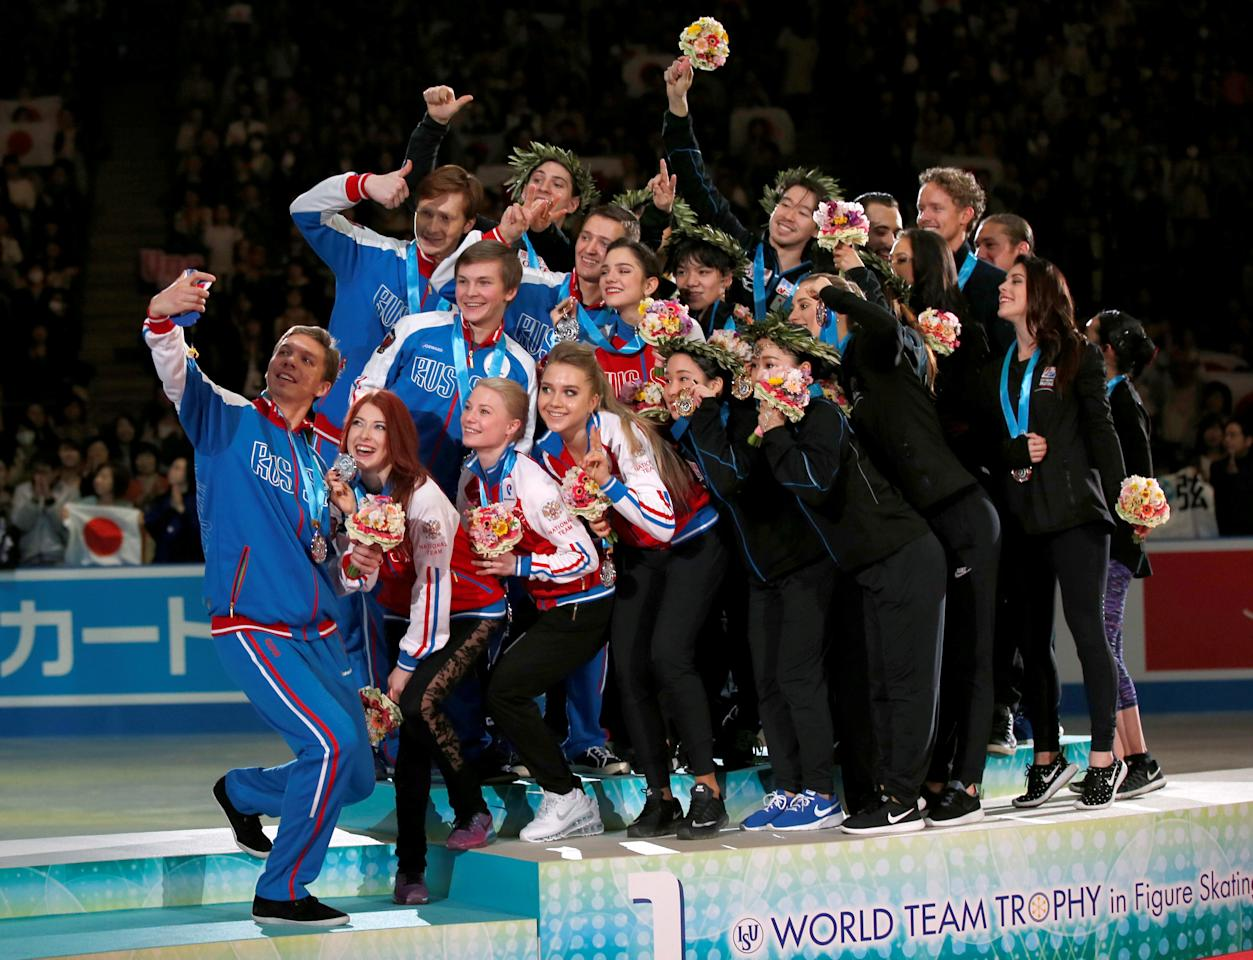 Figure Skating - ISU World Team Trophy -  Award Ceremony - Tokyo, Japan - 22/4/17 - From L-R: Russia's, Japan's and U.S.'s players take selfie after the award ceremony.    REUTERS/Toru Hanai     TPX IMAGES OF THE DAY